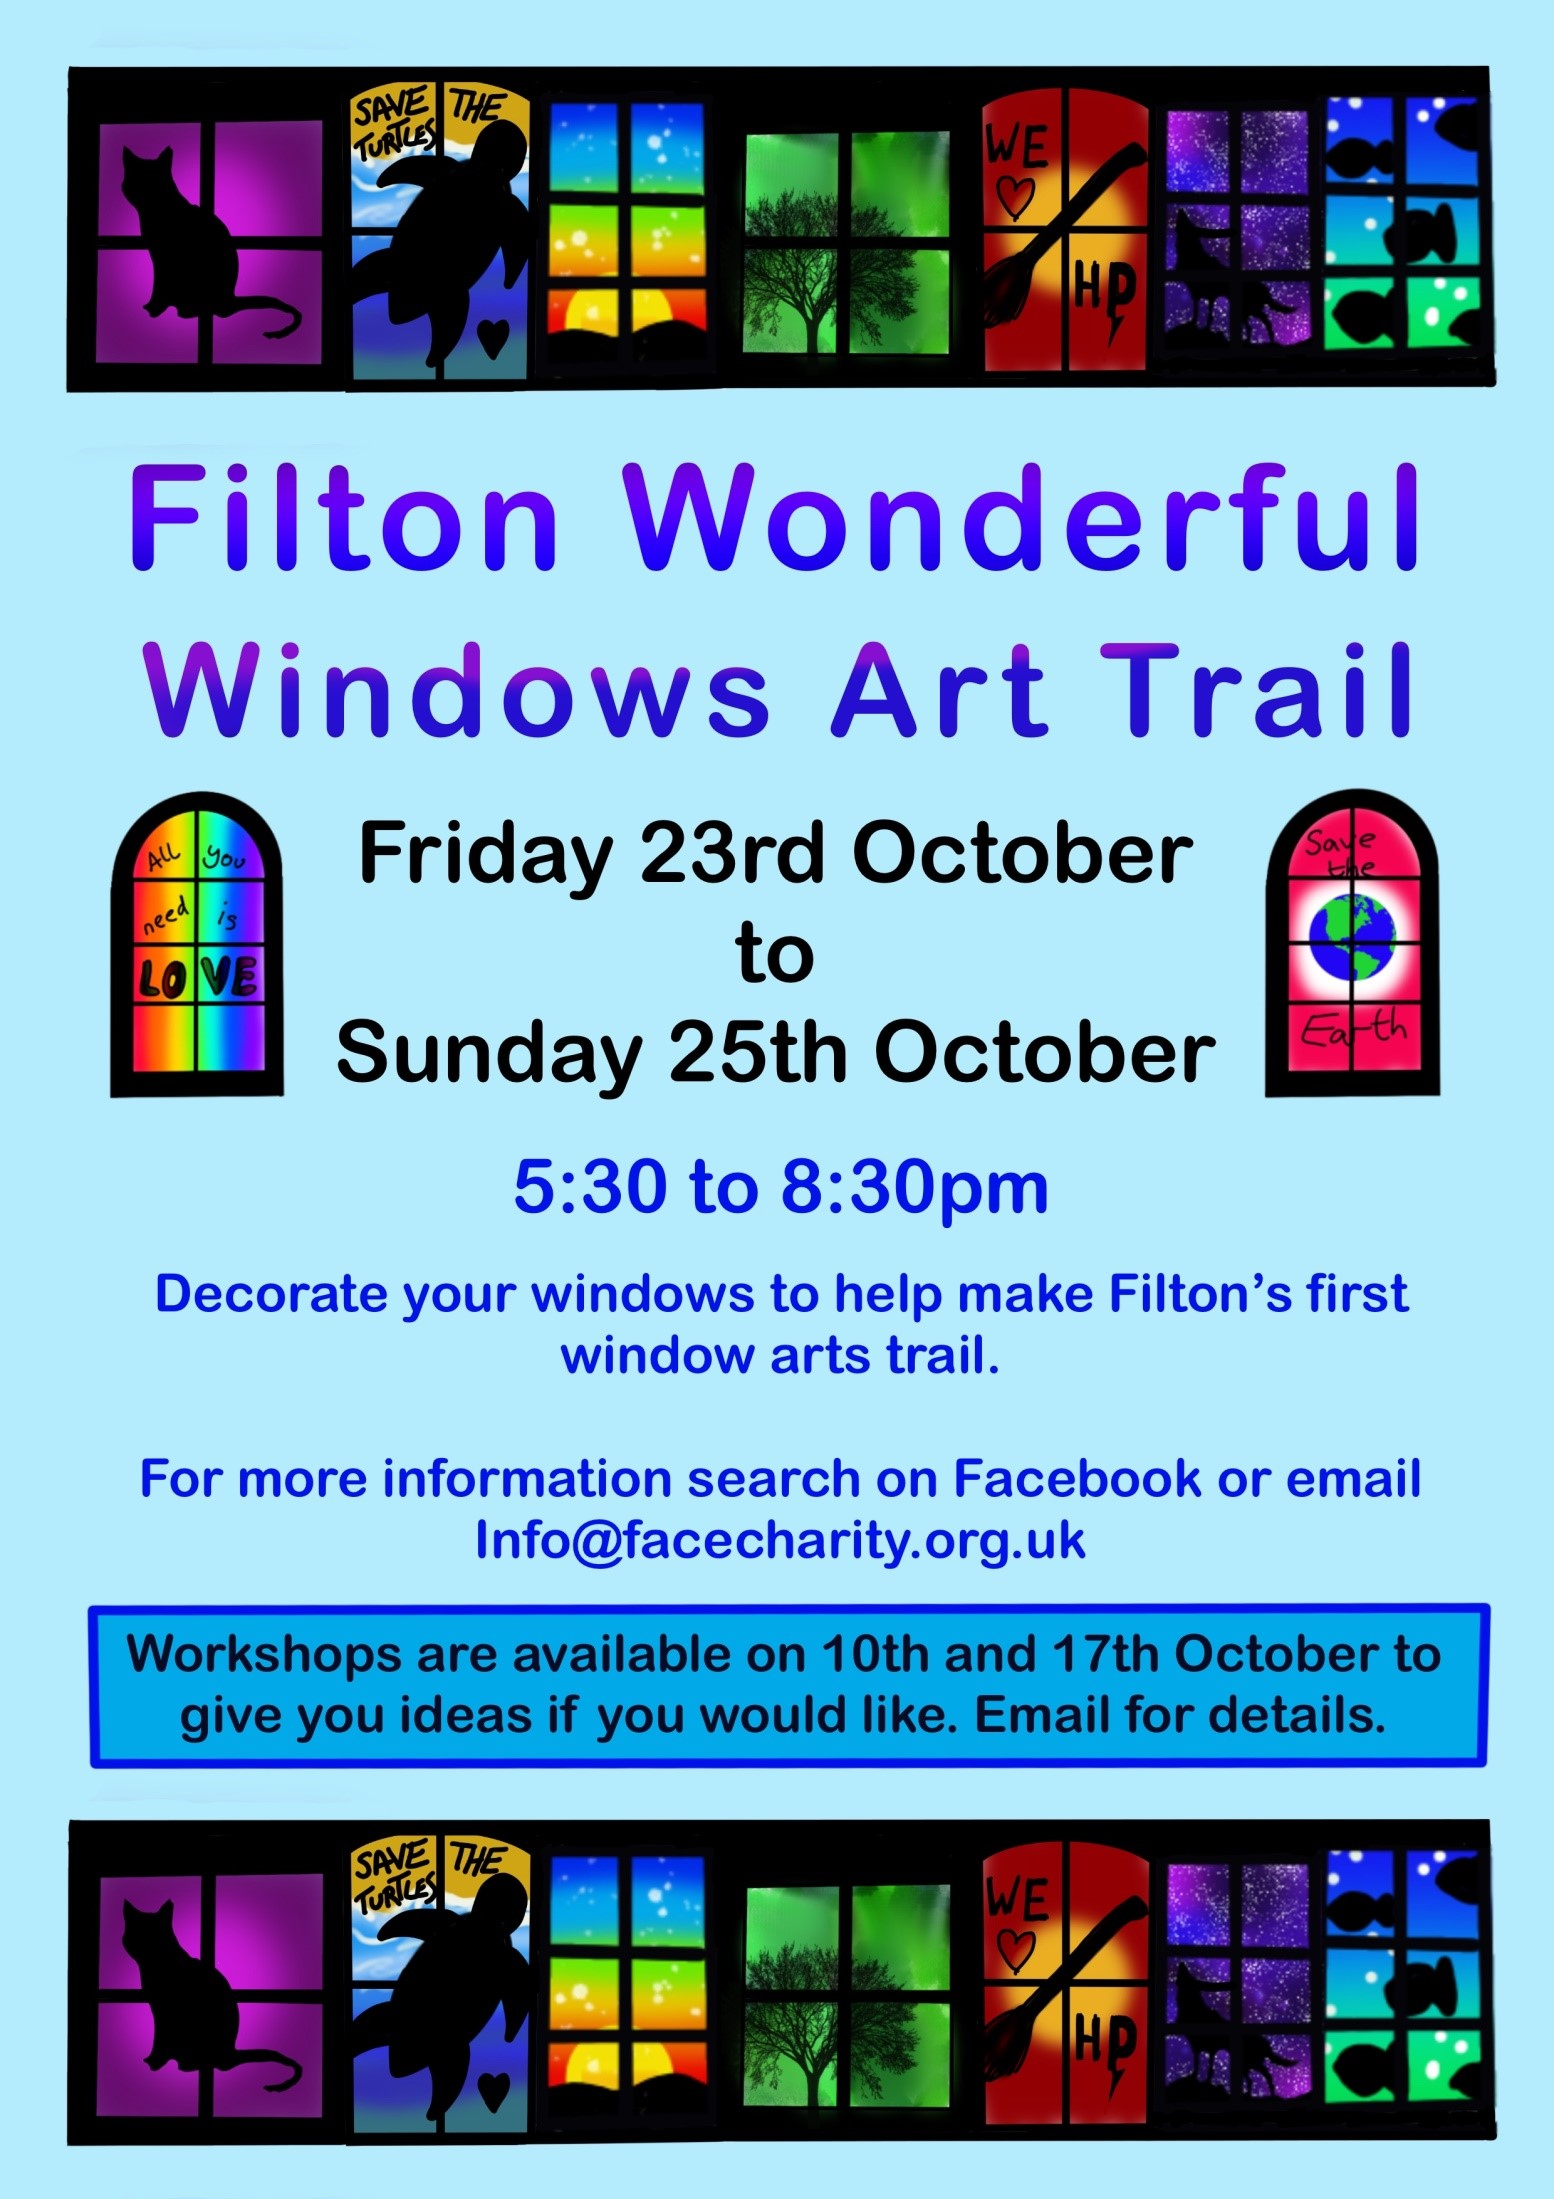 Glass act! Let's all brighten up Filton for Wonderful Windows autumn arts trail